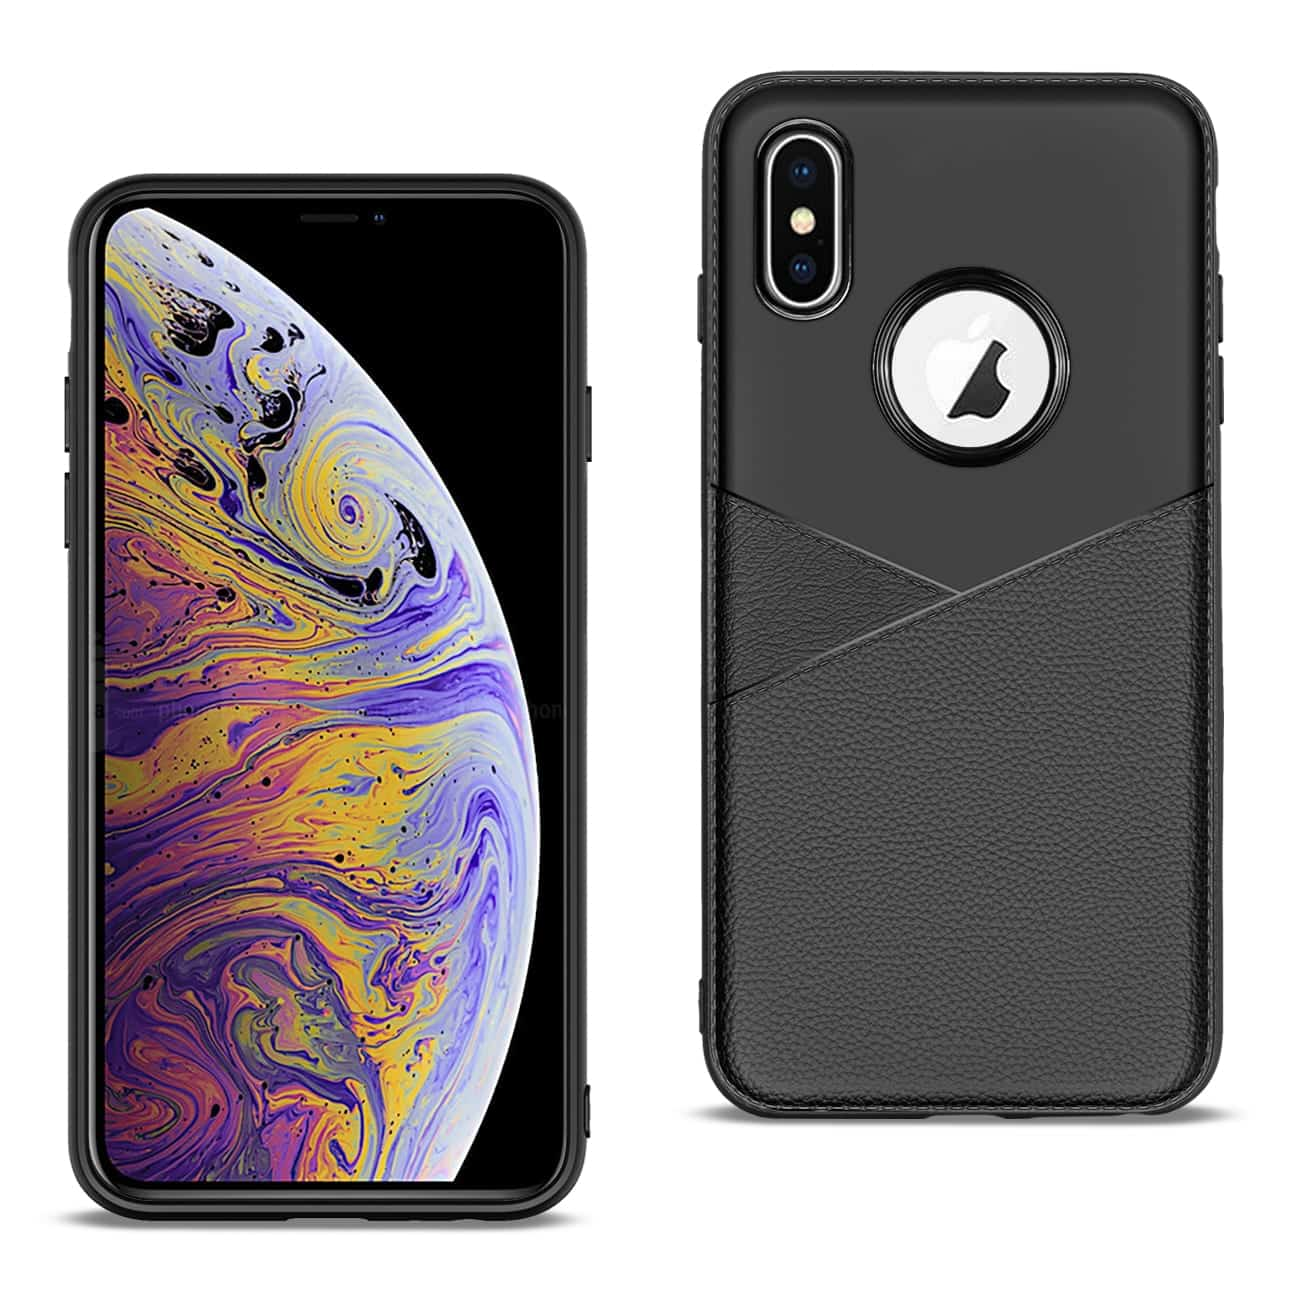 Apple iPhone XS MAX Good quality phone case in Black